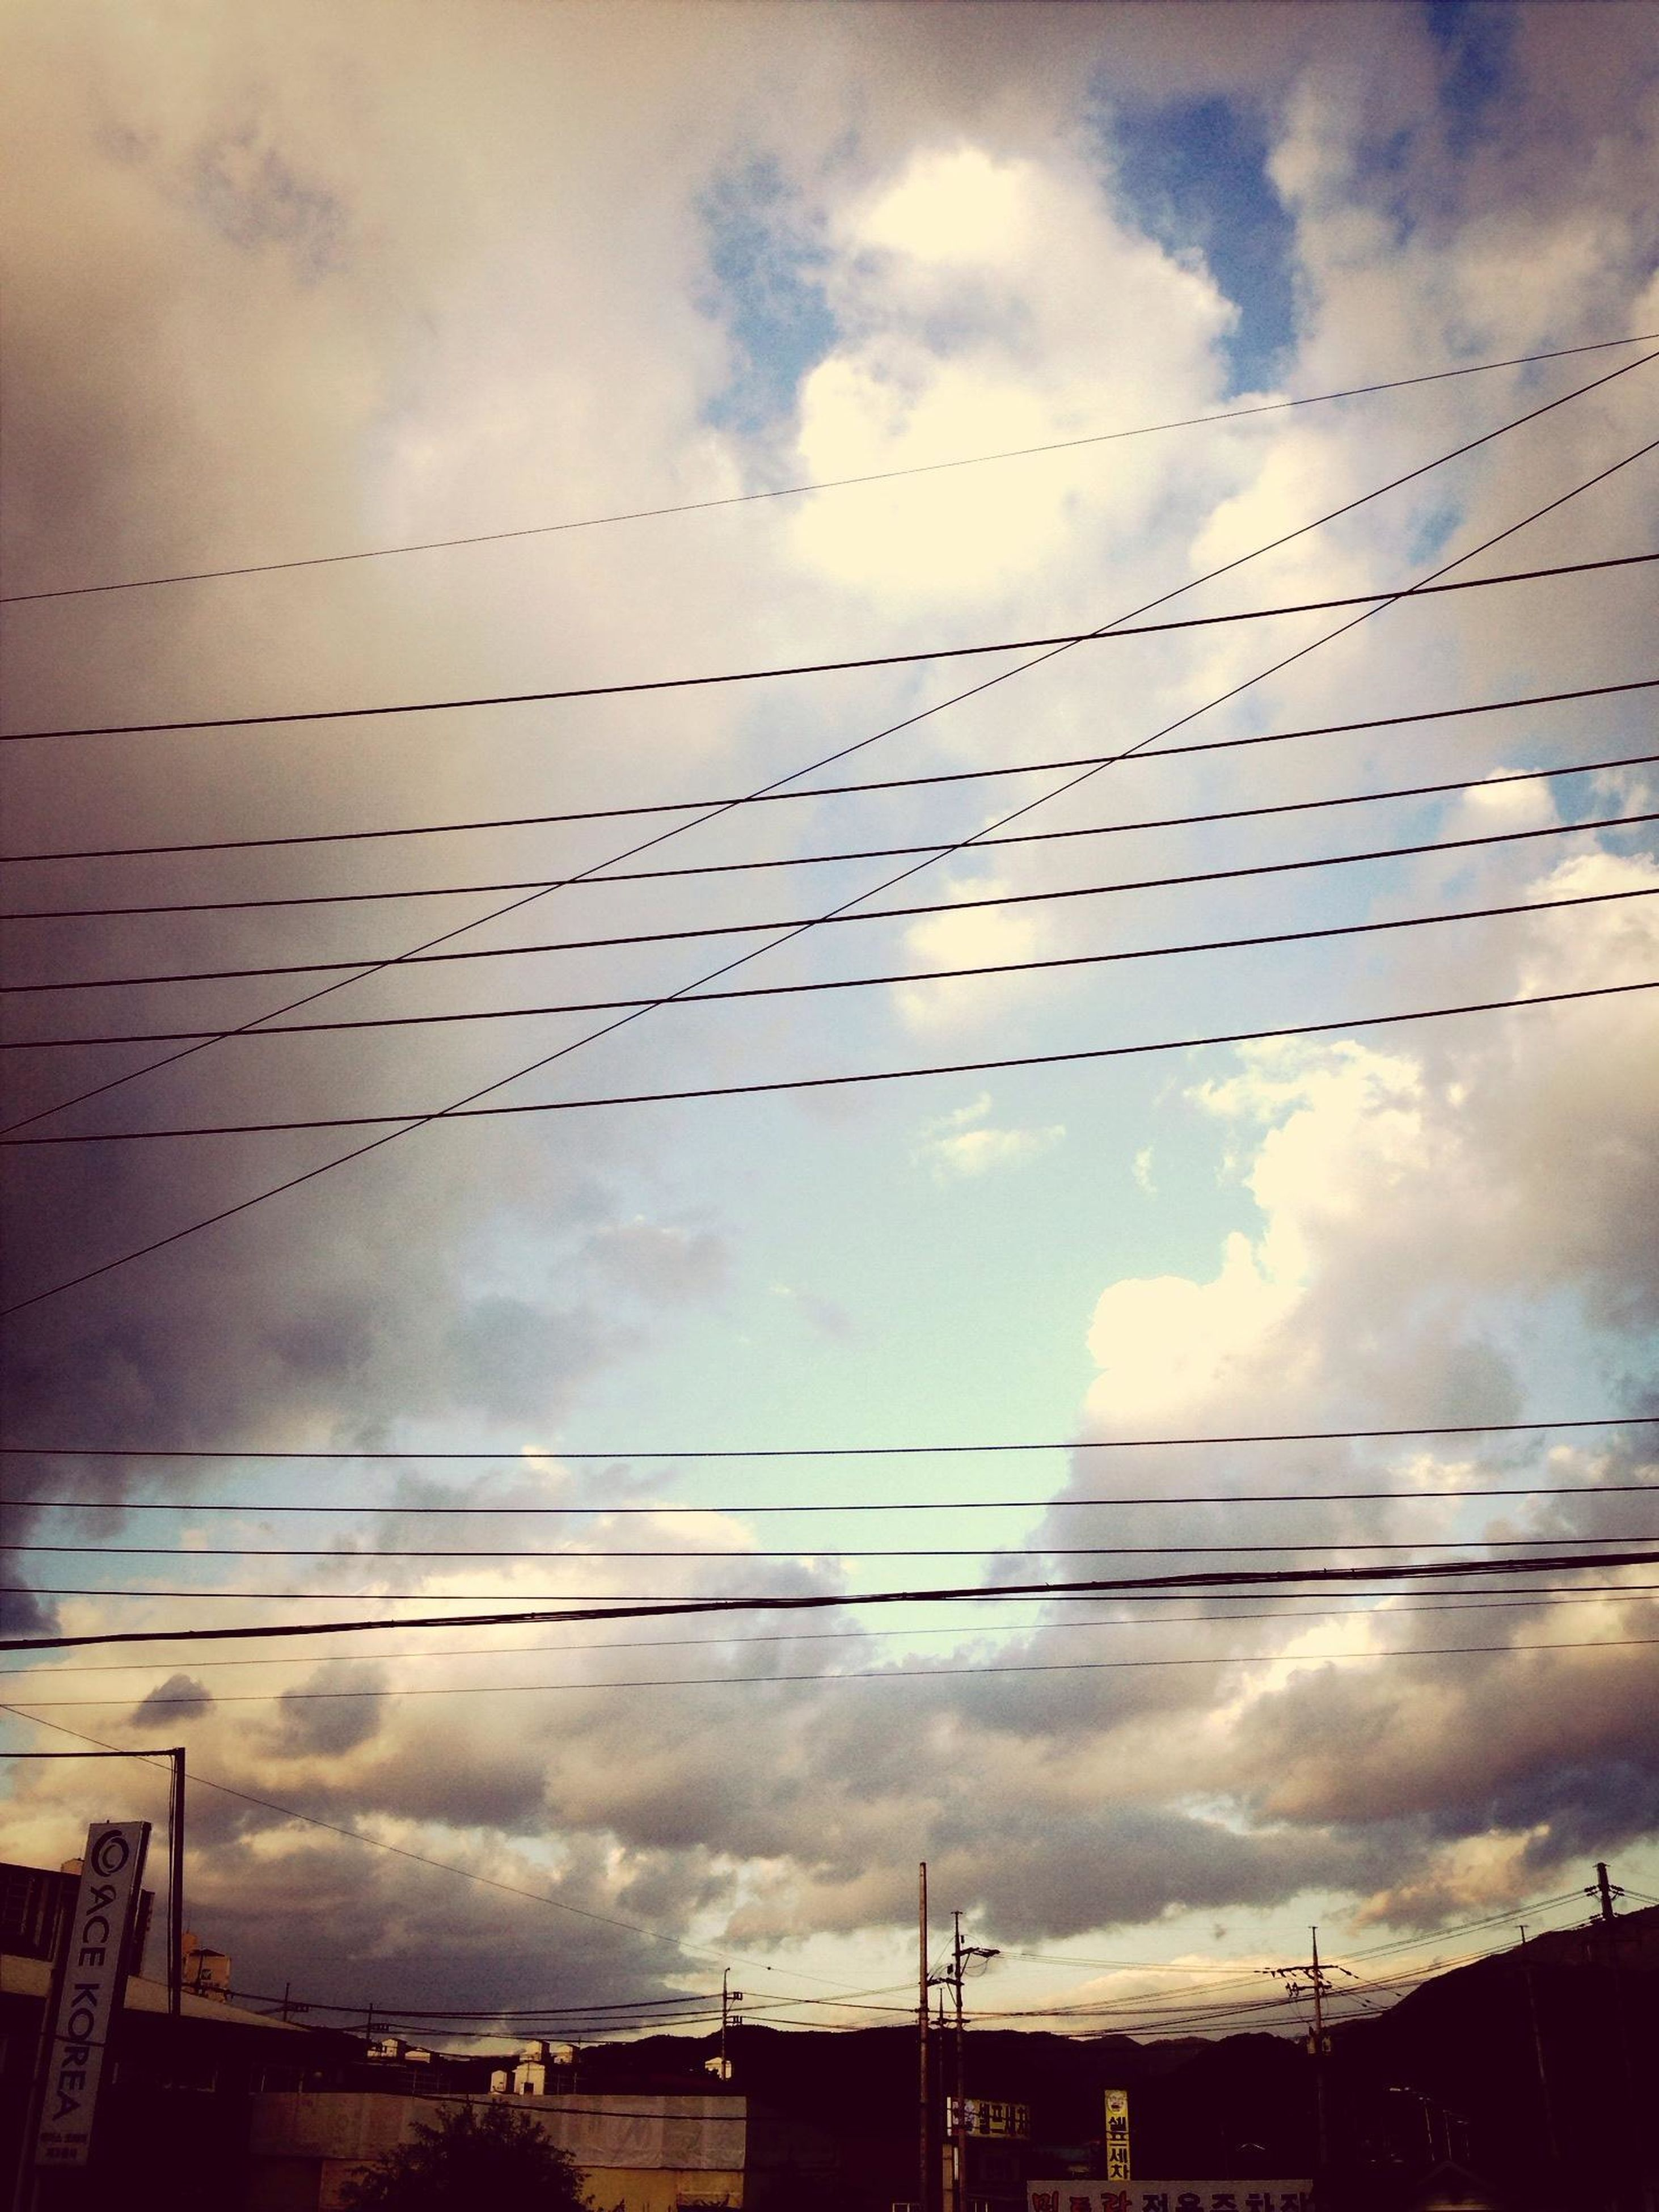 low angle view, sky, cloud - sky, architecture, built structure, cloudy, building exterior, power line, cloud, bird, silhouette, cable, connection, dusk, overcast, weather, outdoors, no people, electricity, building